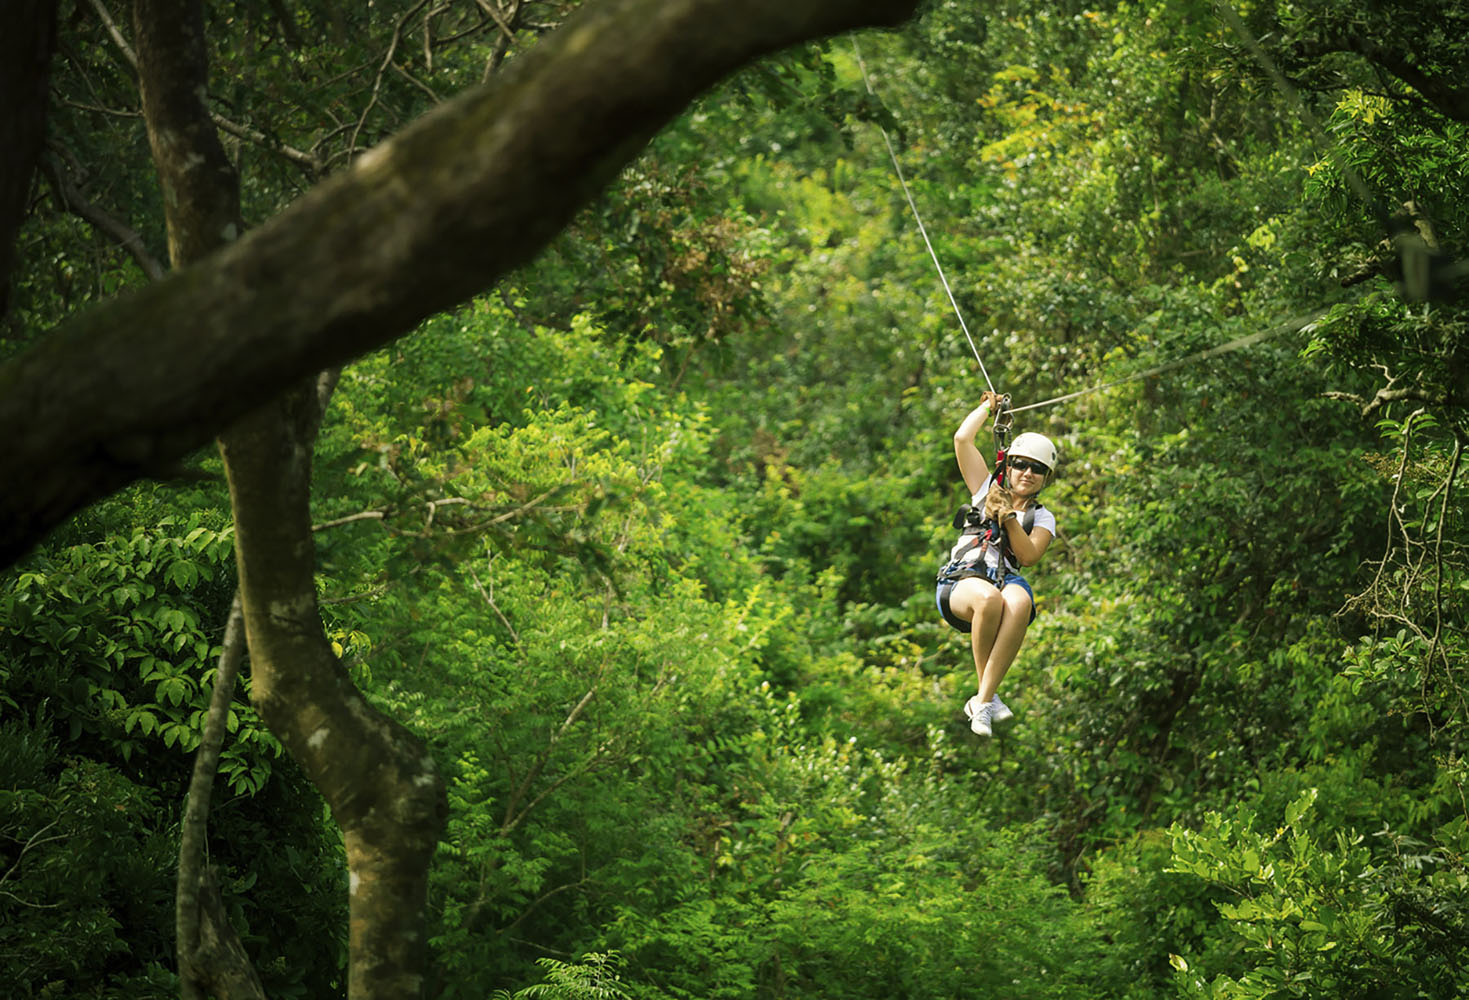 There are many ways to explore the rainforests of Central America, but nothing is as unforgettable an experience as soaring on a zip-line.